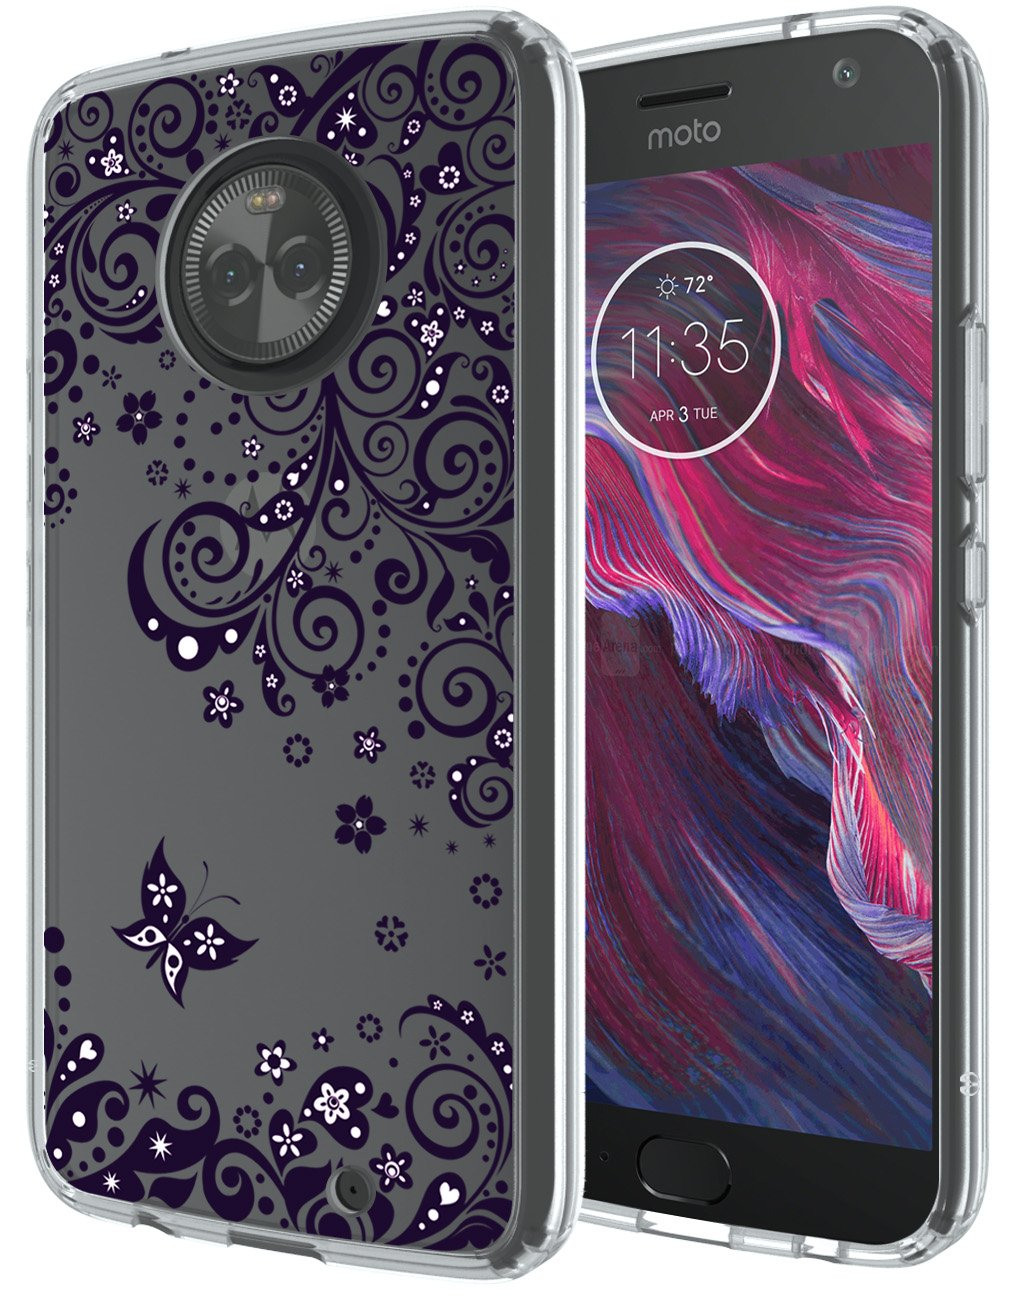 Moto X4 Case, SWODERS Flower Clear Design Shock Absorbing TPU + Hard PC Bumper Case Cover For Motorola Moto X4 - Purple